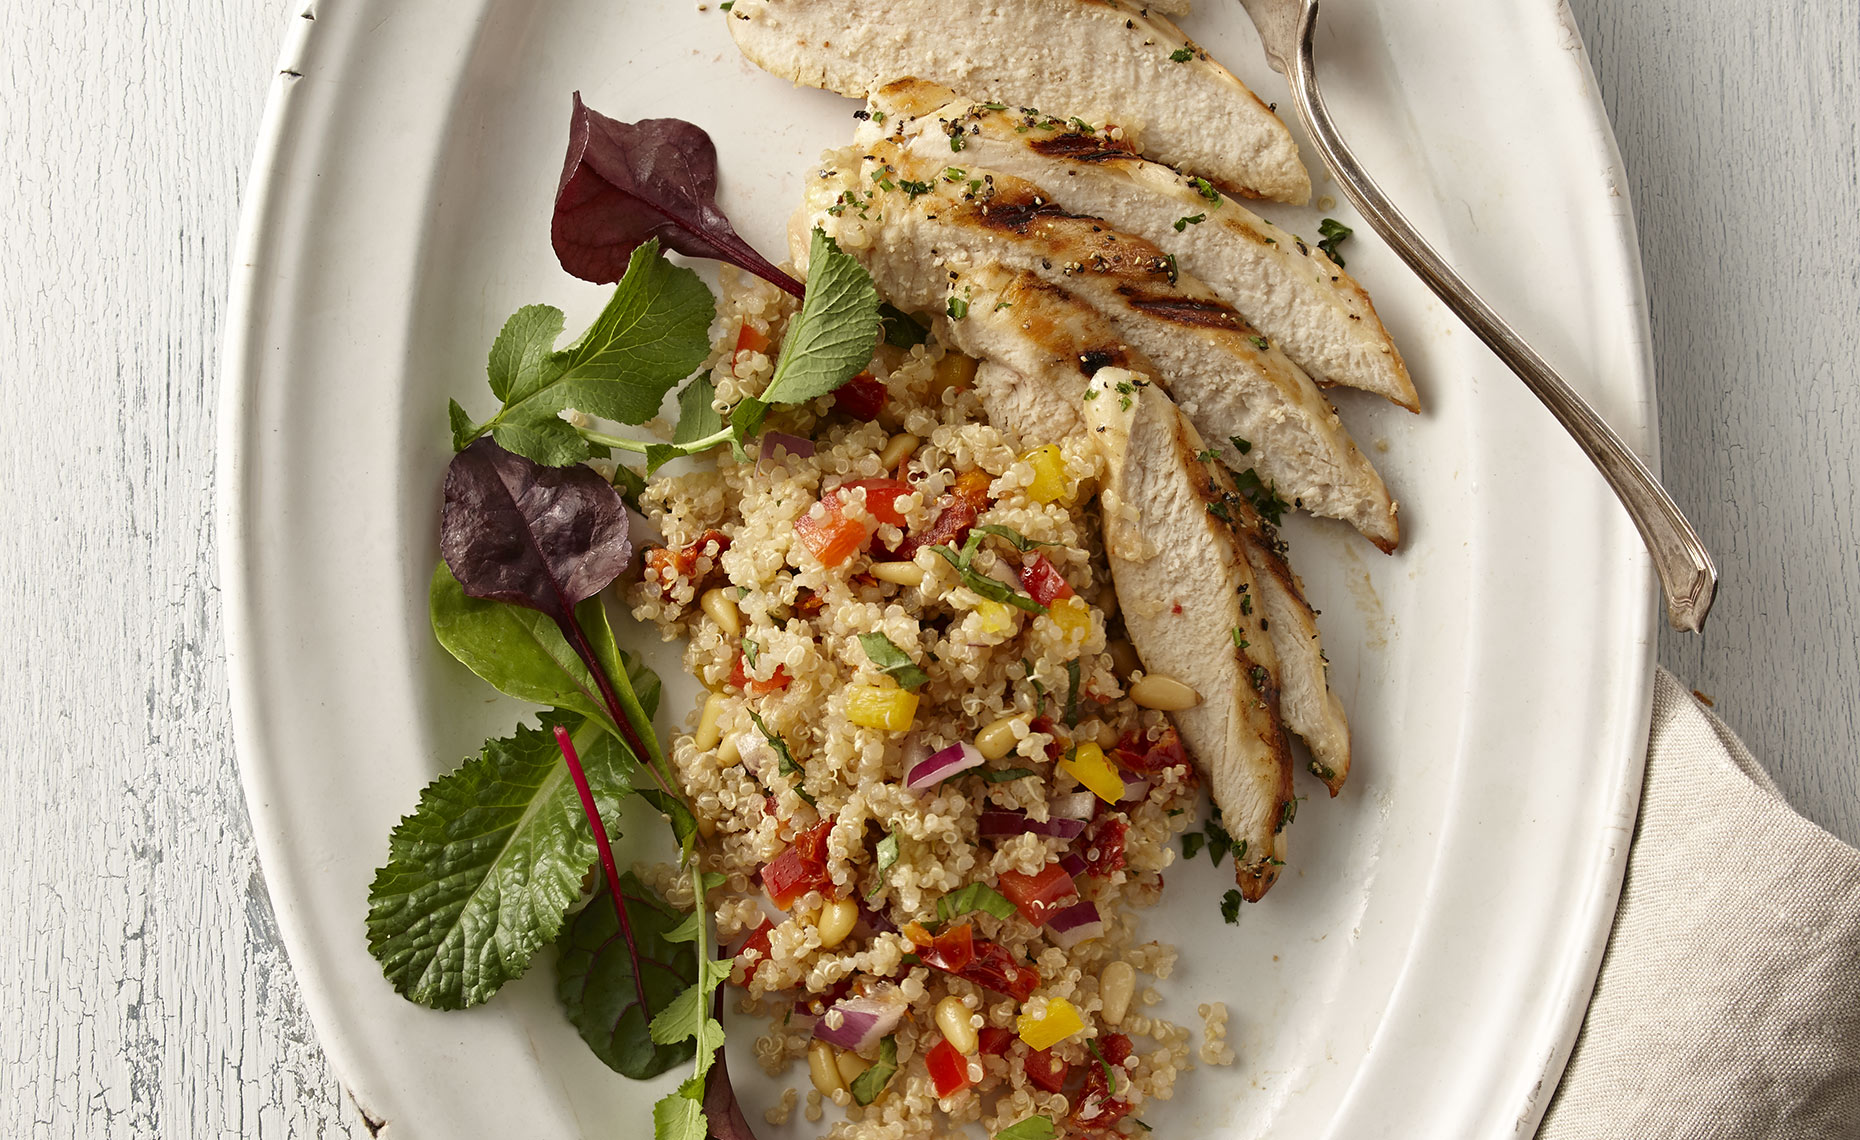 Food Photographer,  Chicken Photography, Poultry Photography | Pohuski Studios,  Grilled Chicken Quinoa Salad